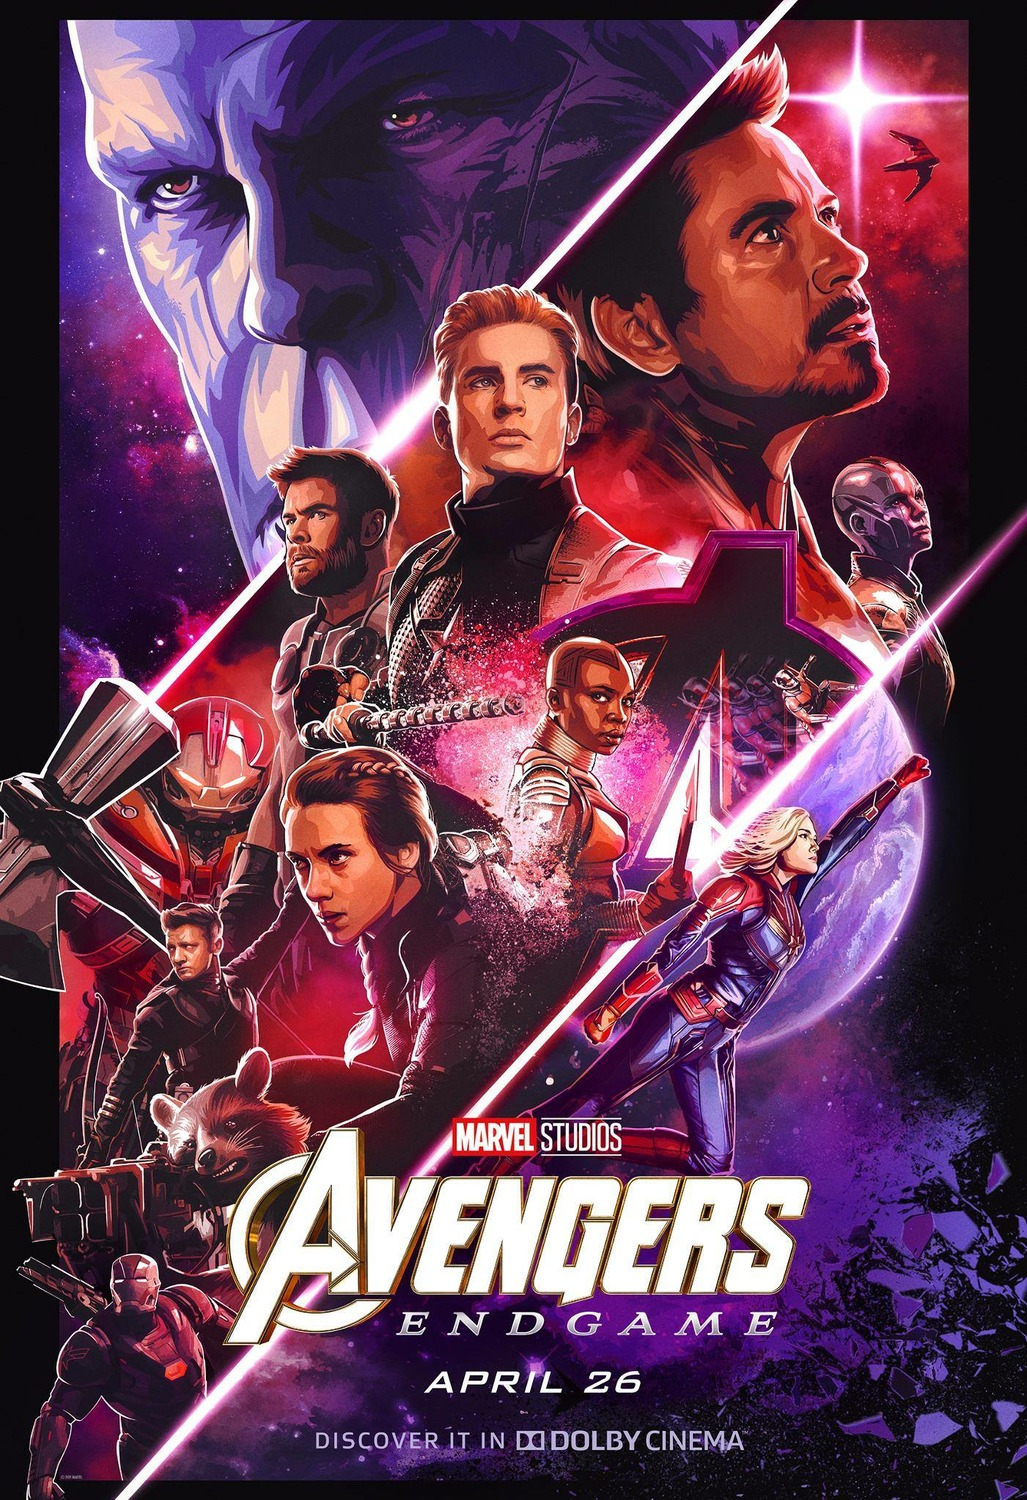 Extra Large Movie Poster Image for Avengers: Endgame (#45 of 57)